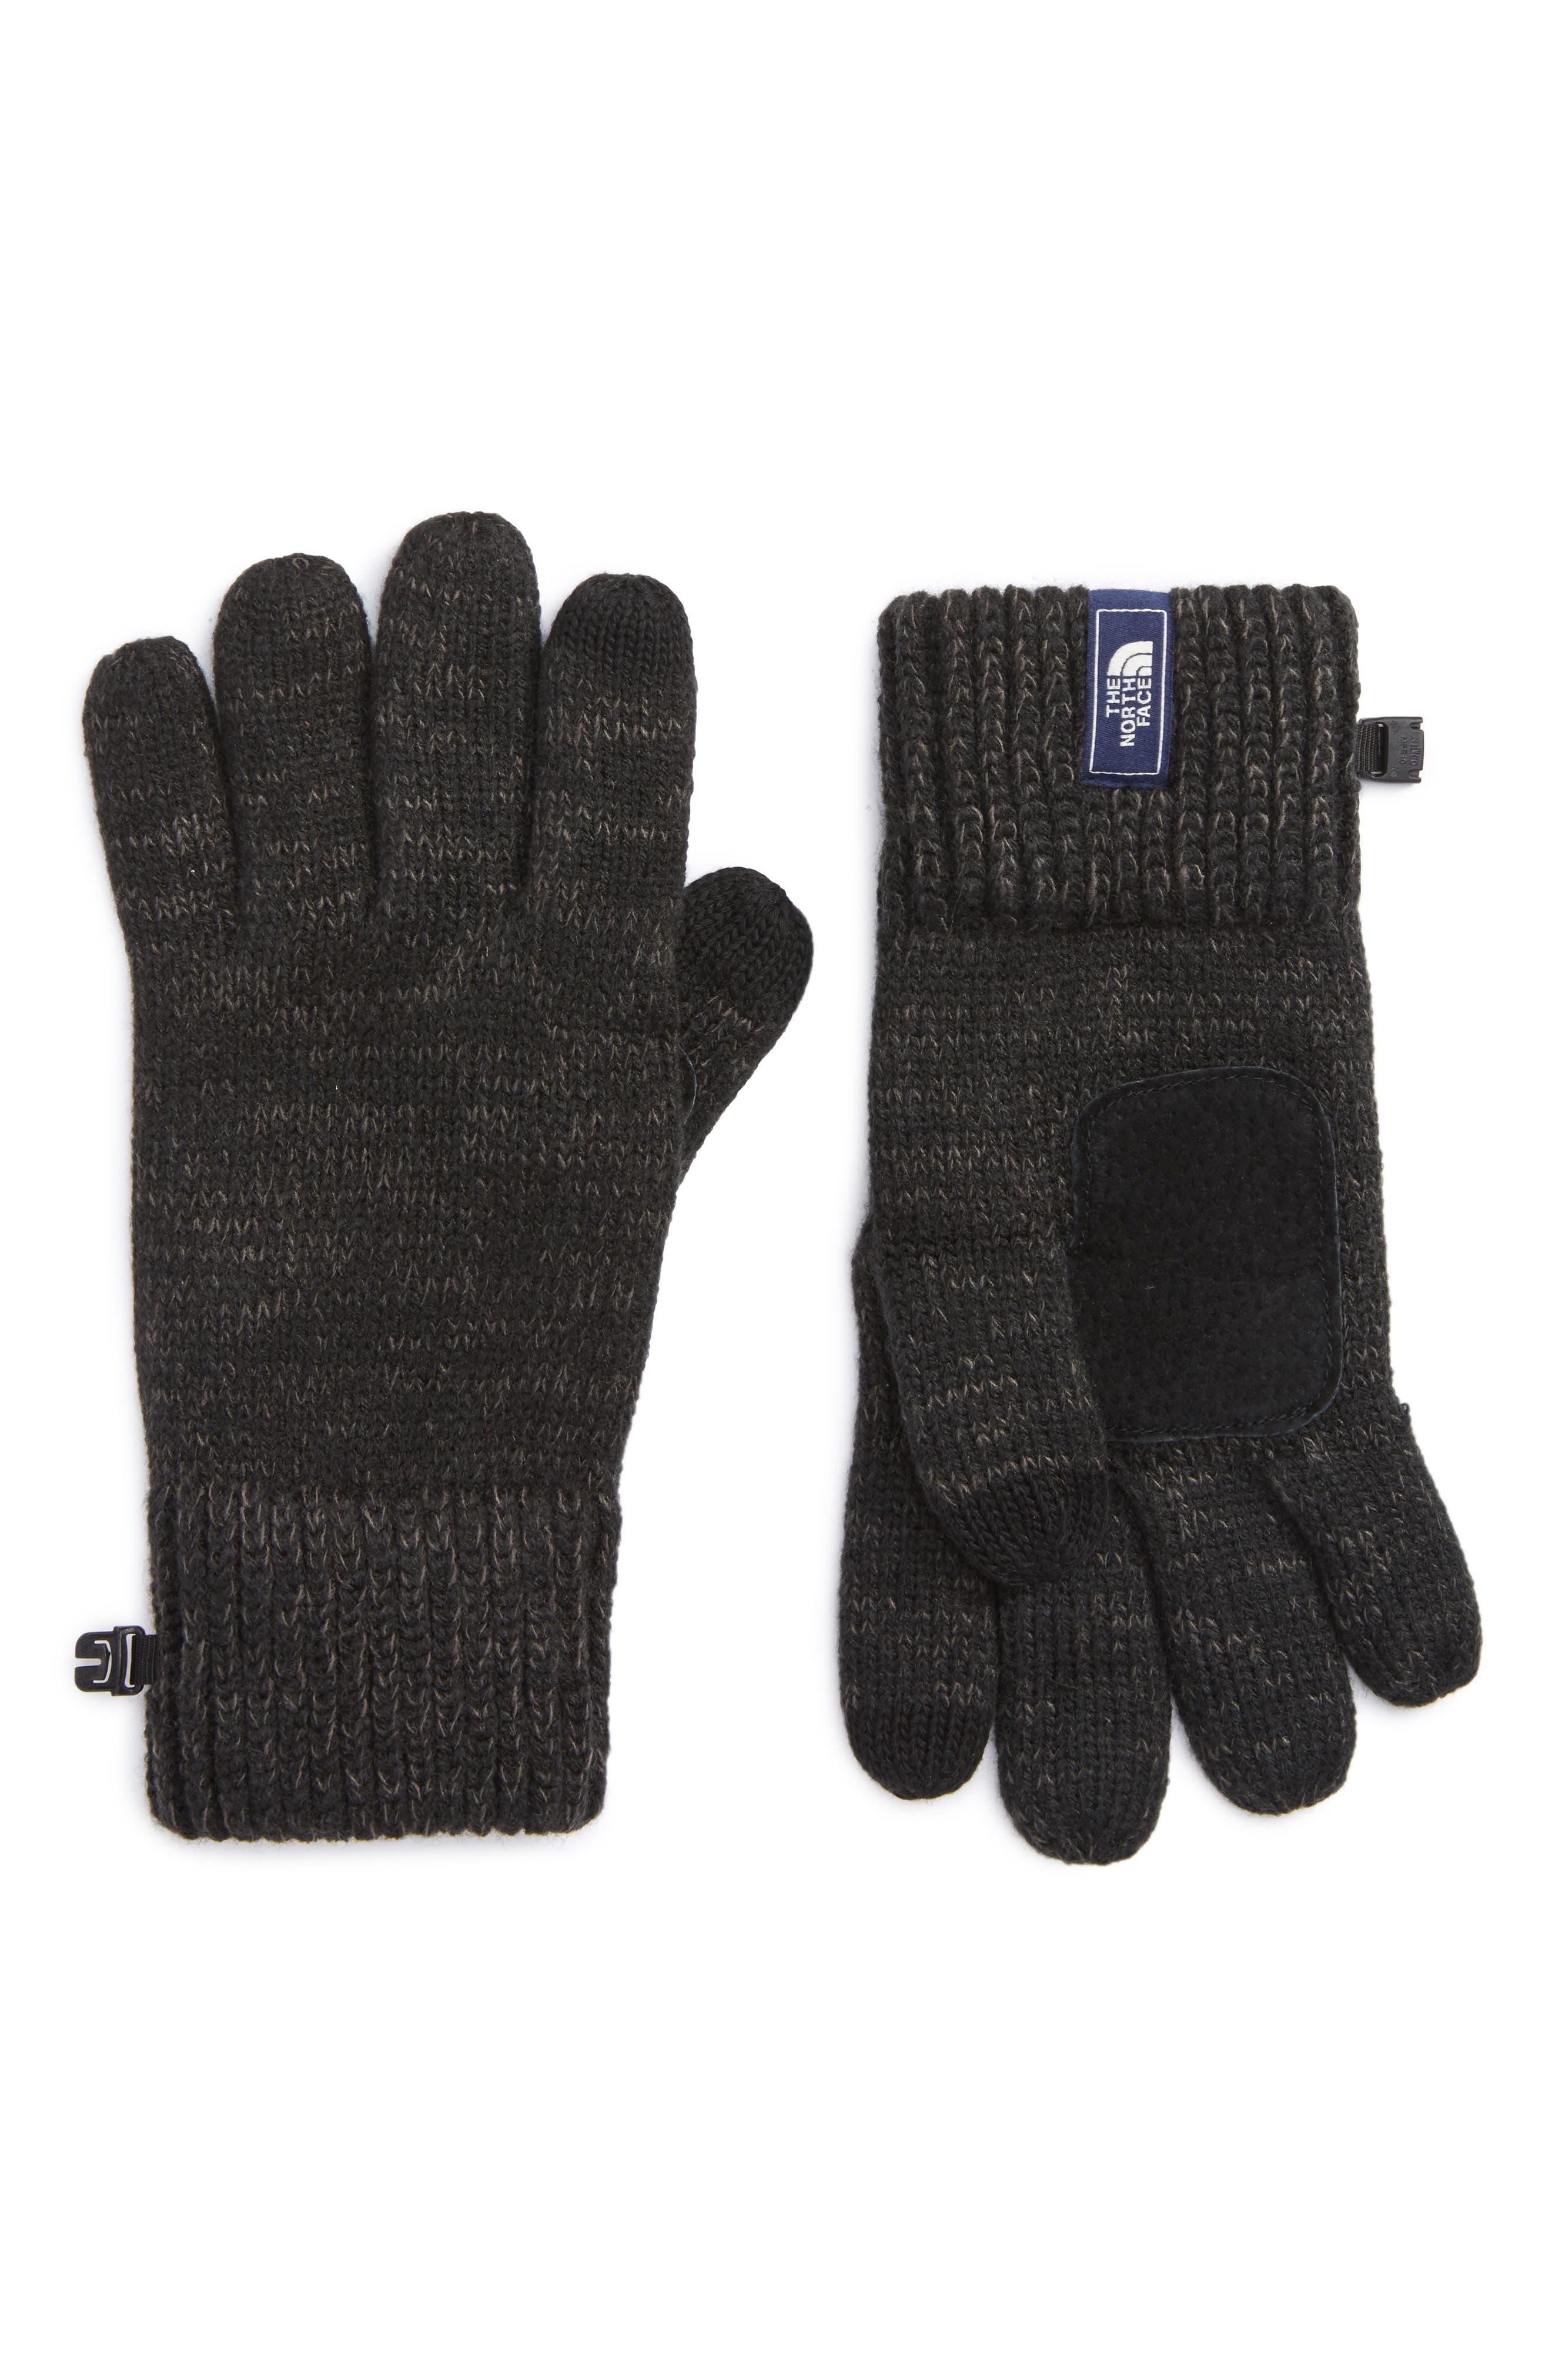 Etip Salty Dog Knit Tech Gloves,                         Main,                         color, 001